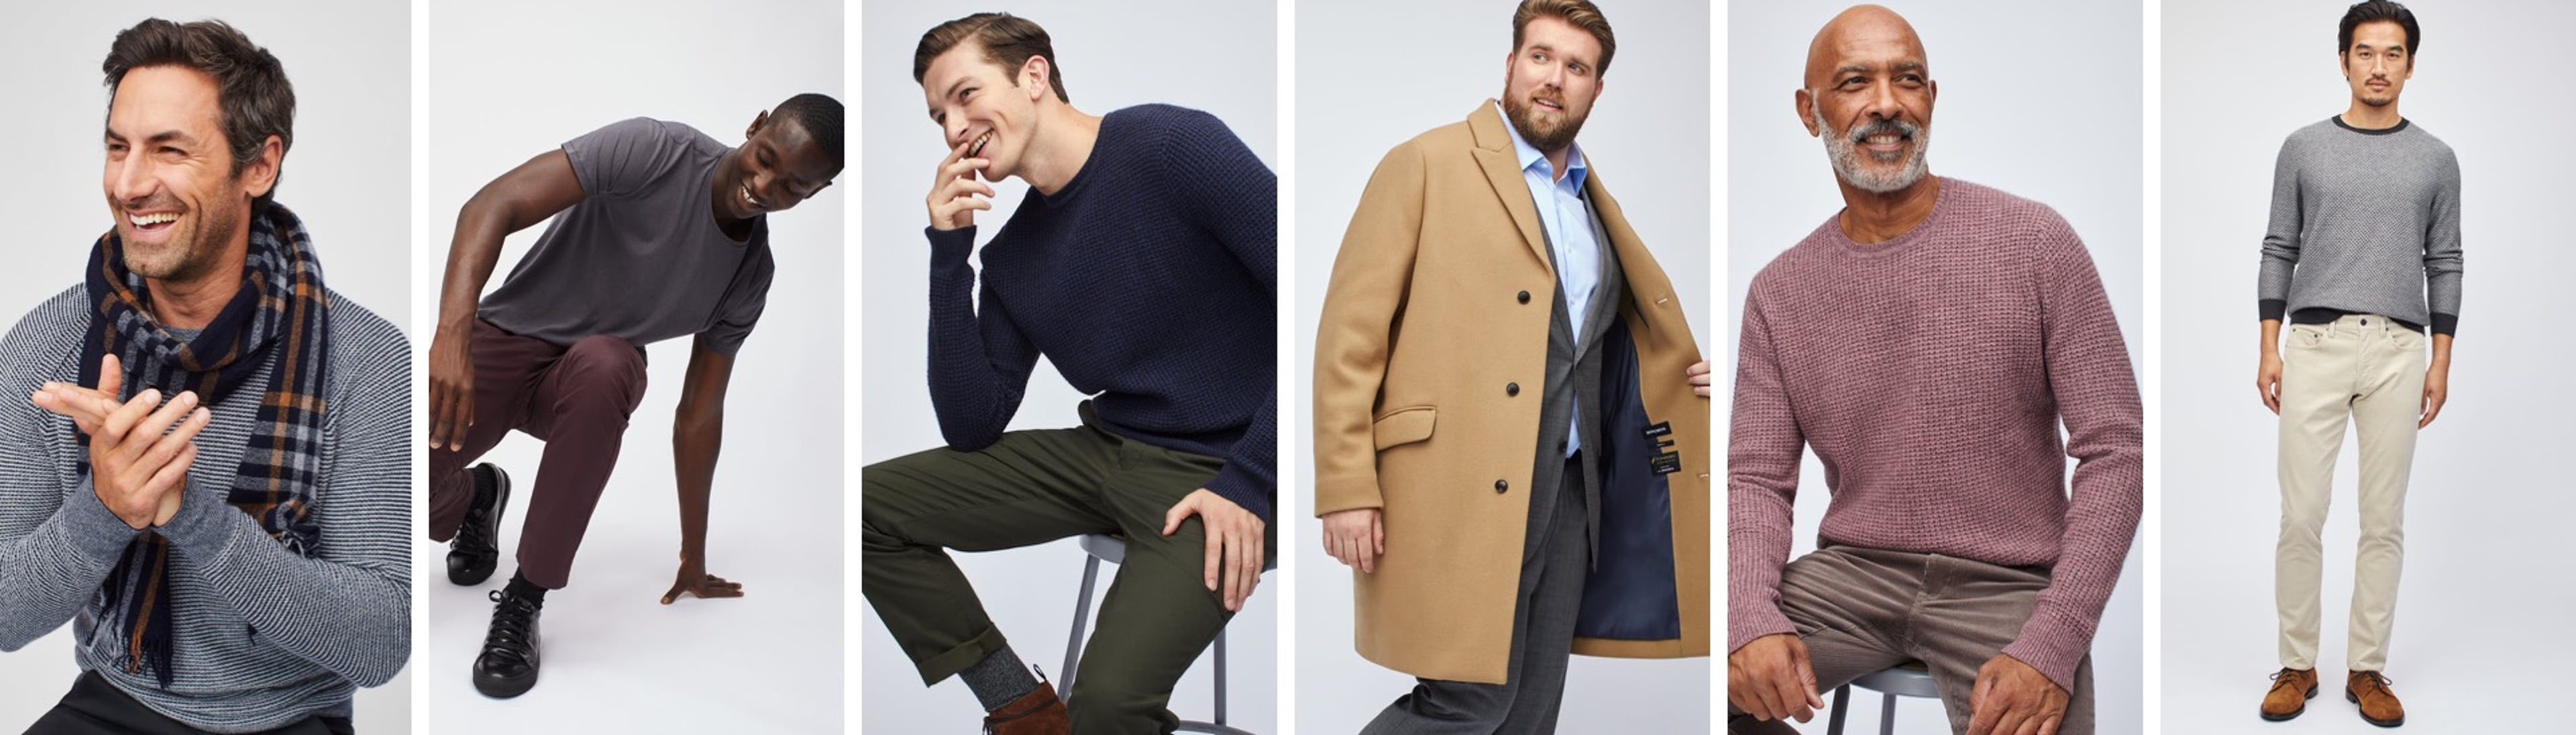 Image of six men in different outfits